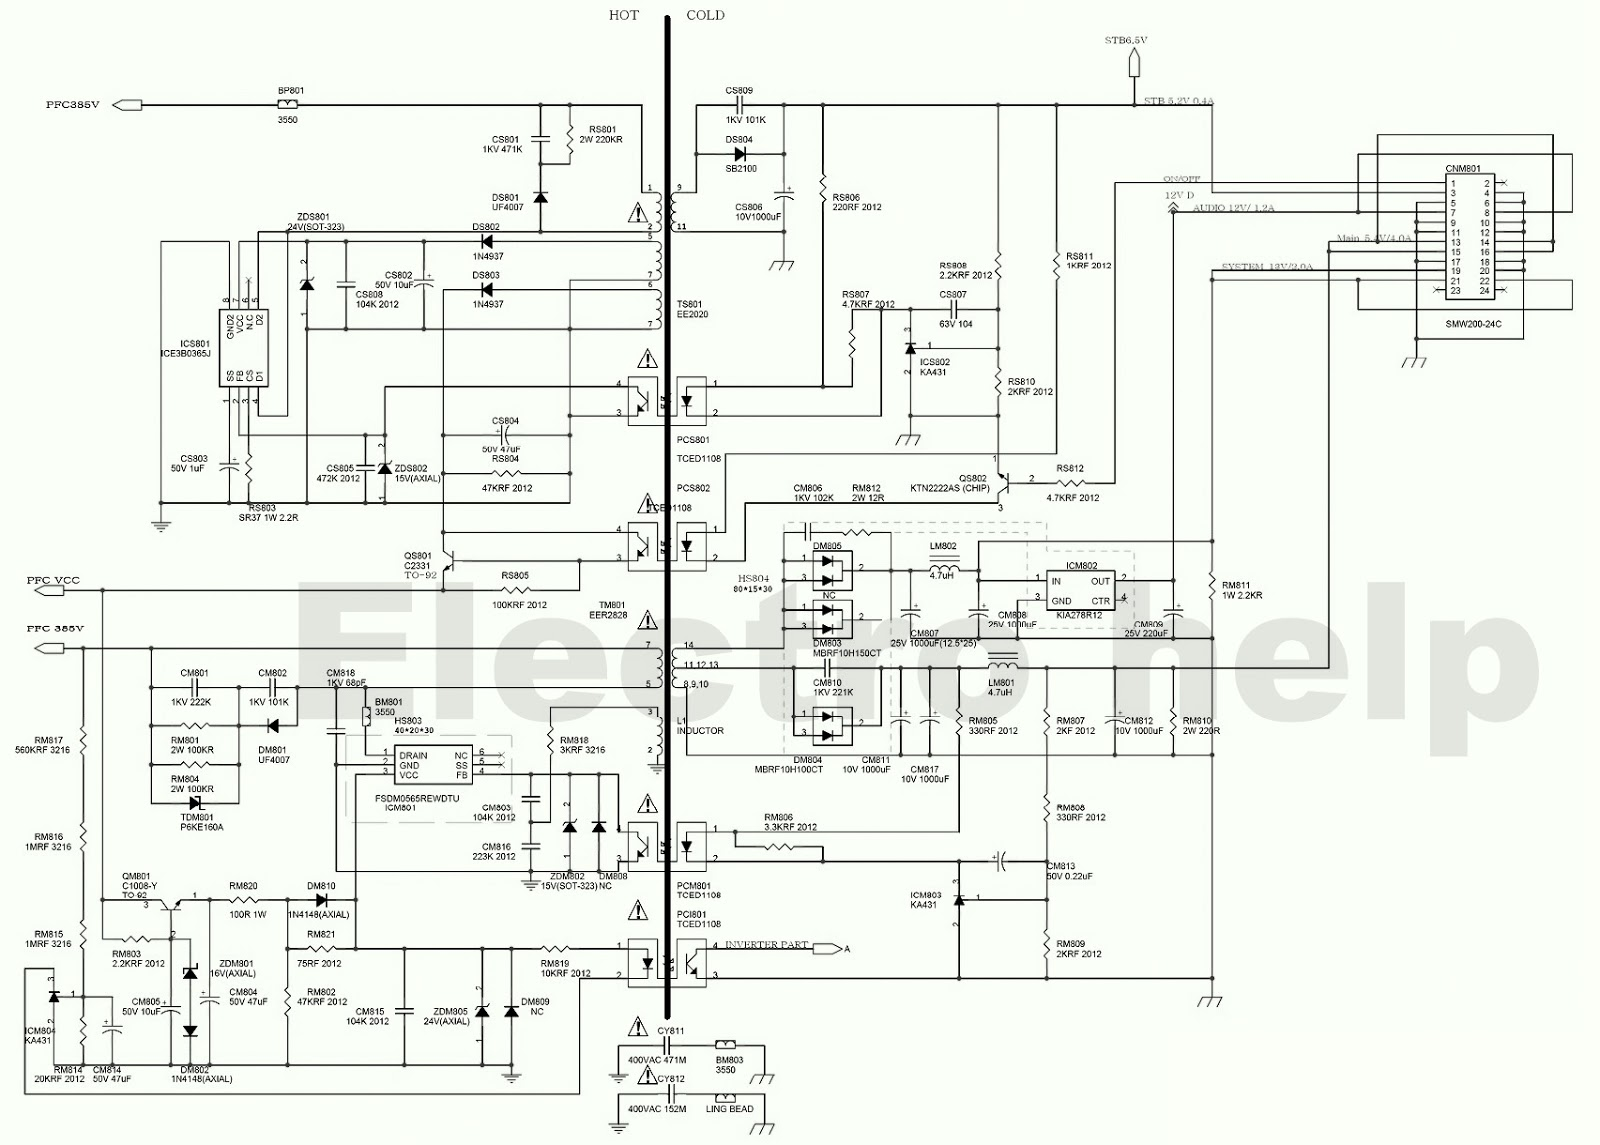 SAMSUNG TU40EO LED LCD TV POWER SUPPLY  SCHEMATIC  Tips